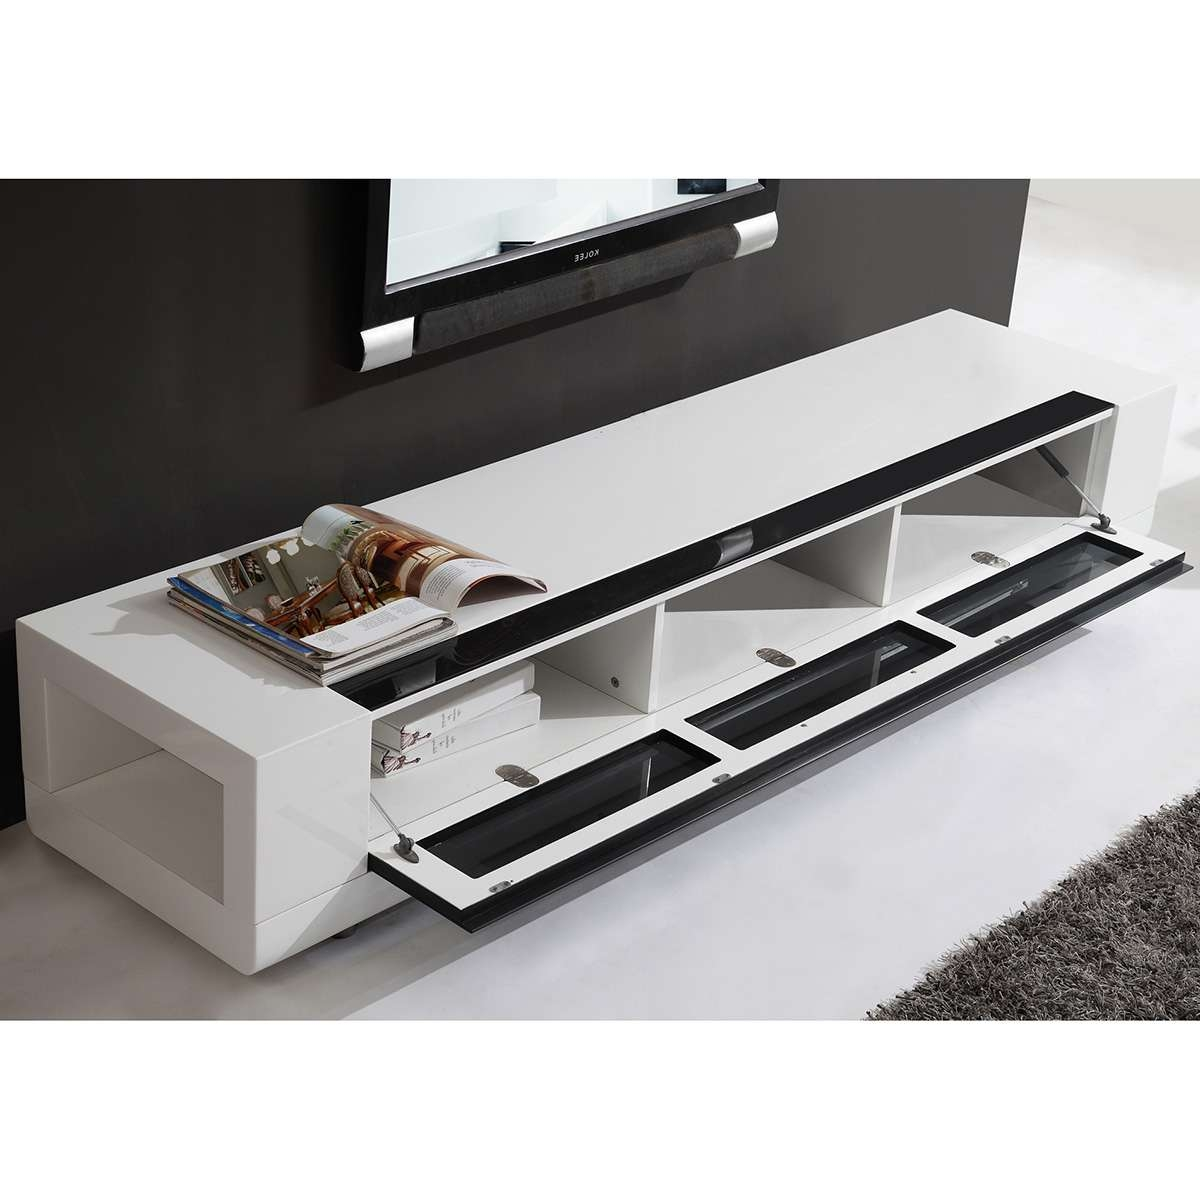 "B Modern Bm 632 Wht Editor Remix 79"" Contemporary Tv Stand In High Intended For B Modern Tv Stands (View 2 of 15)"